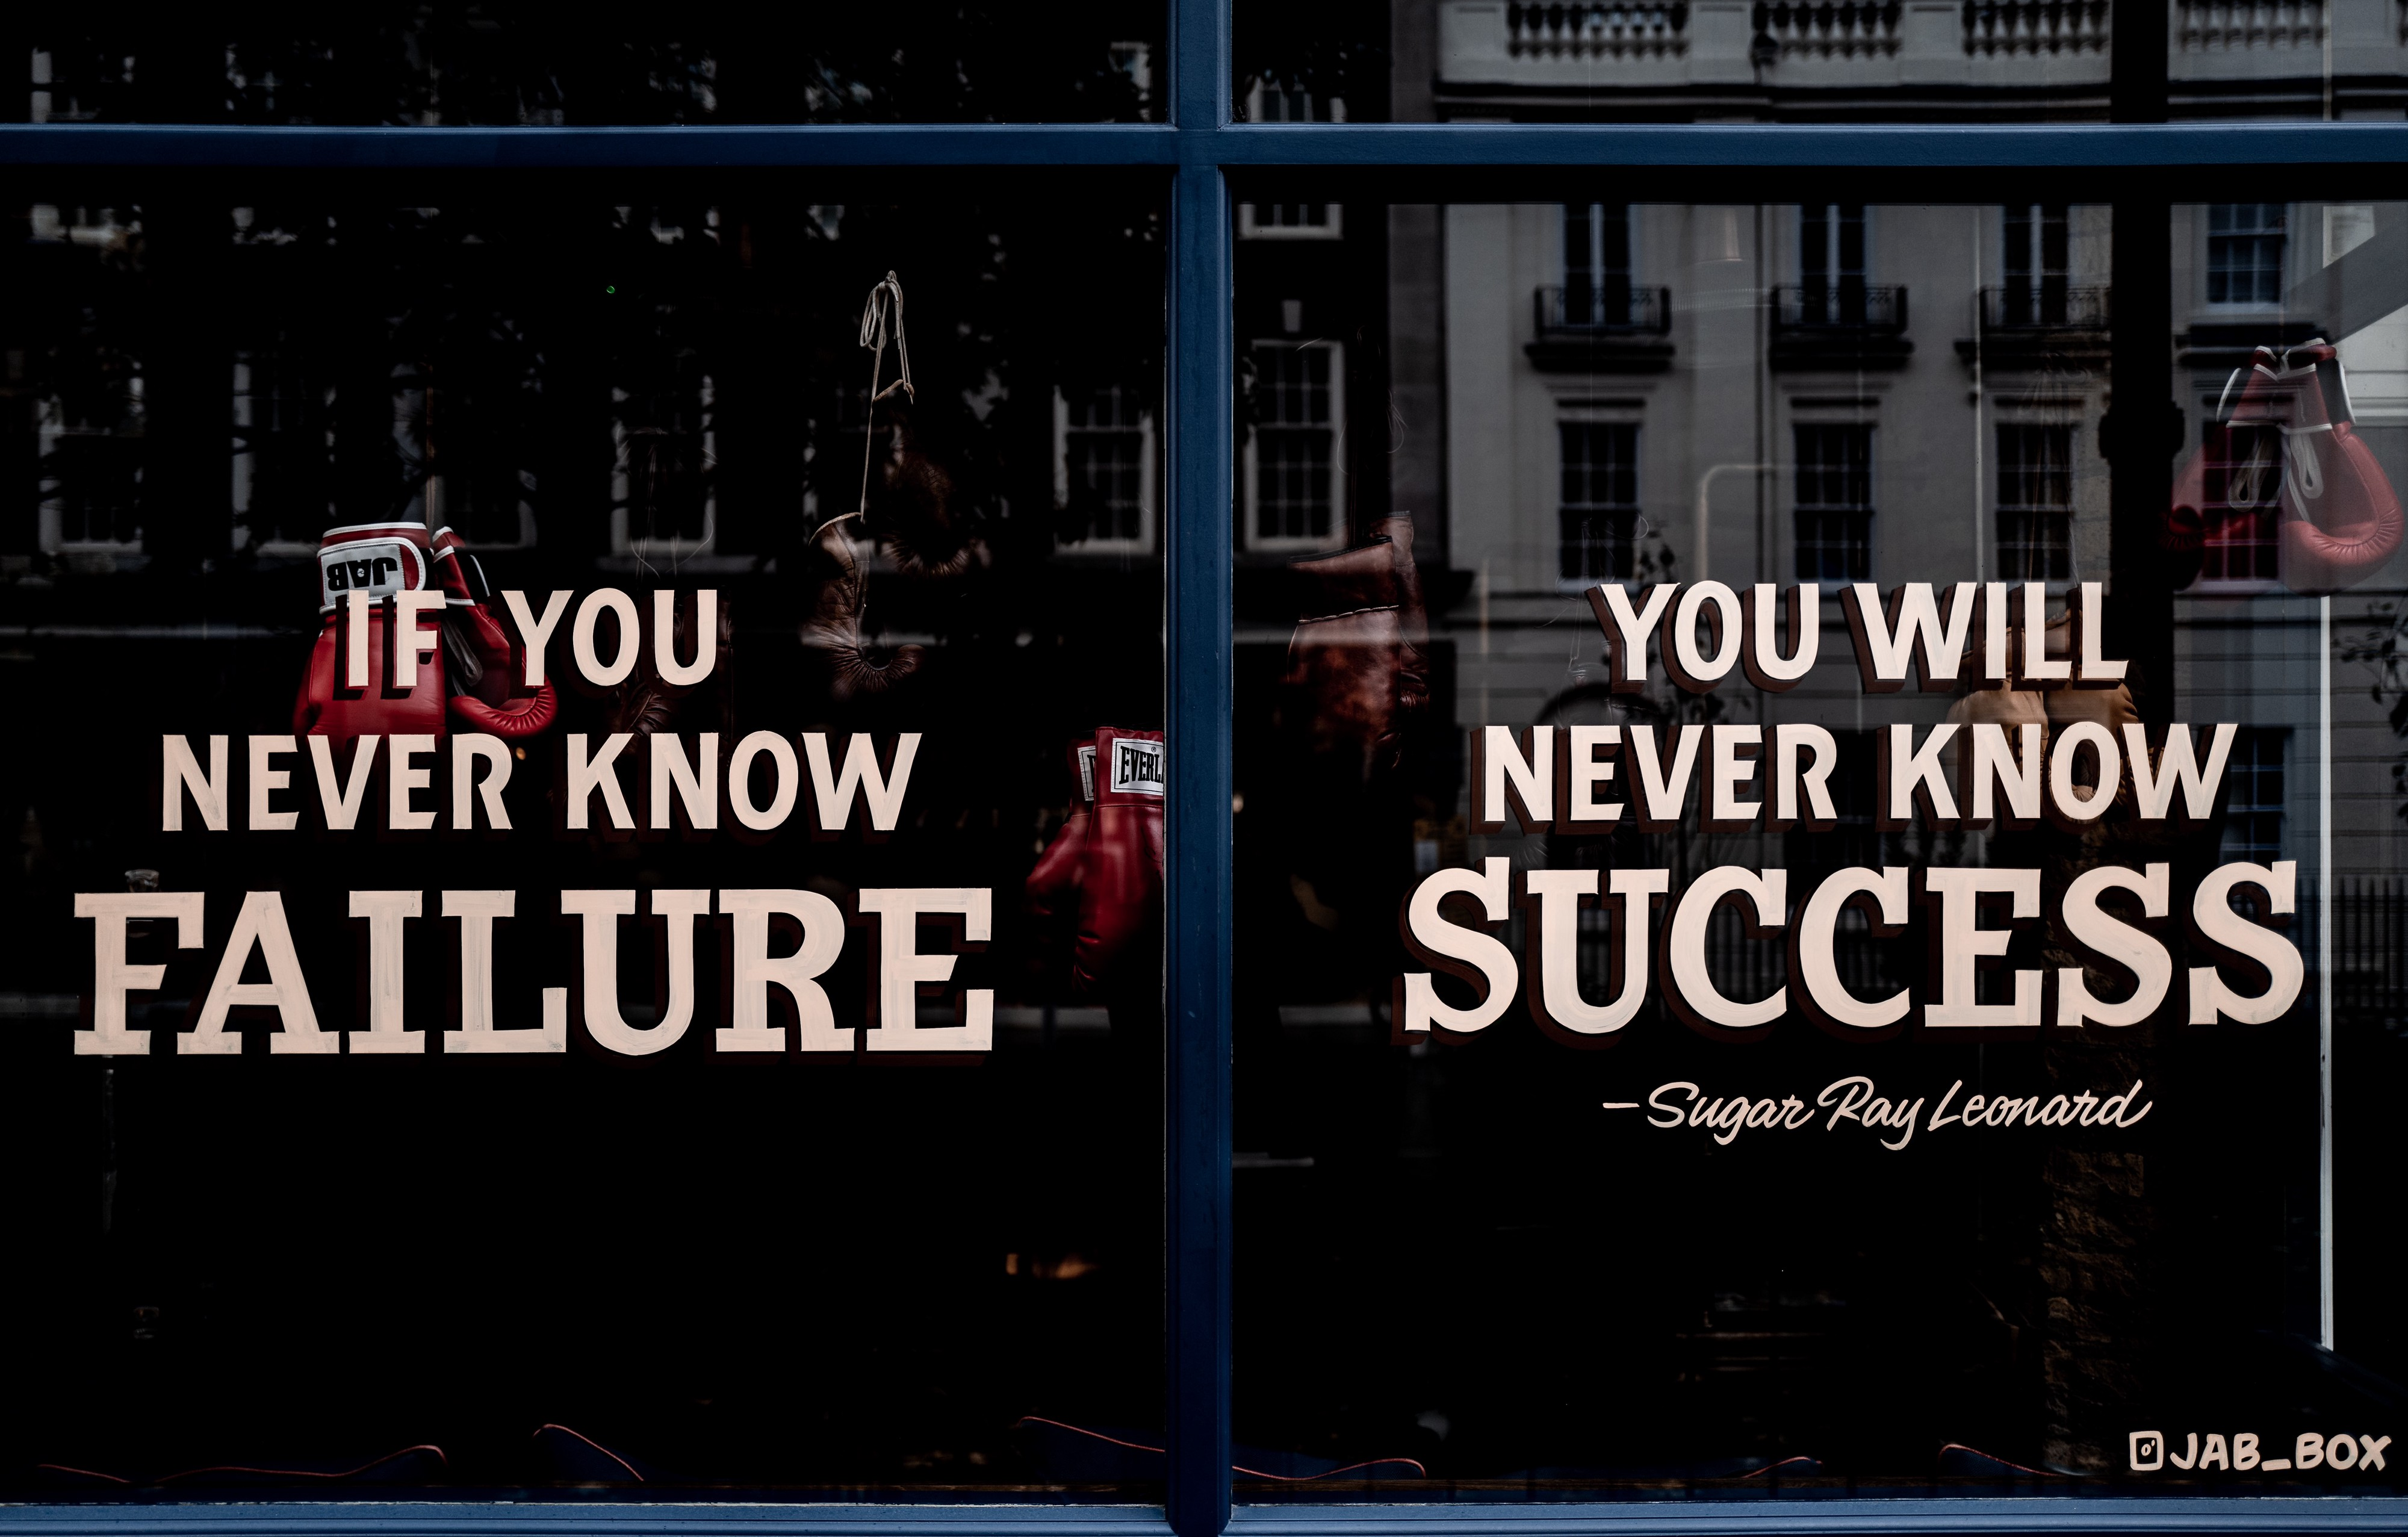 """If you never know failure, you will never know success."" Quote on boxing gym window."